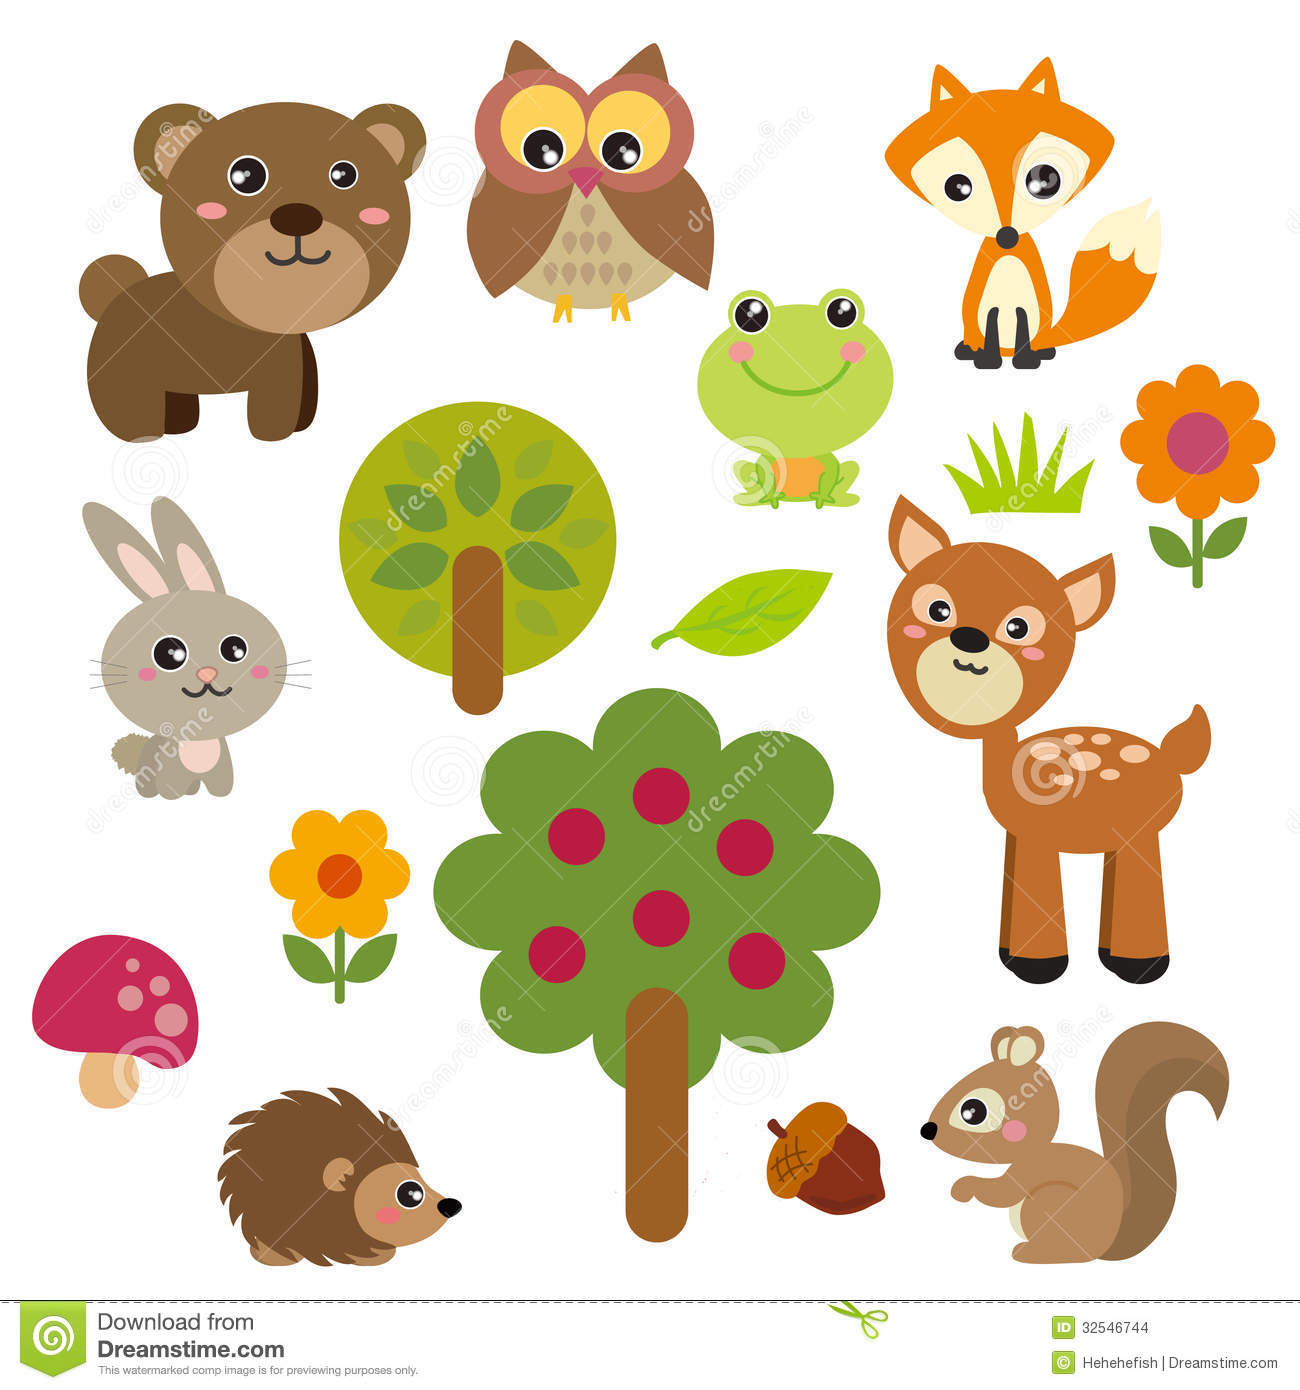 Hedgehog clipart forest animal Free clipart Animal collection Art